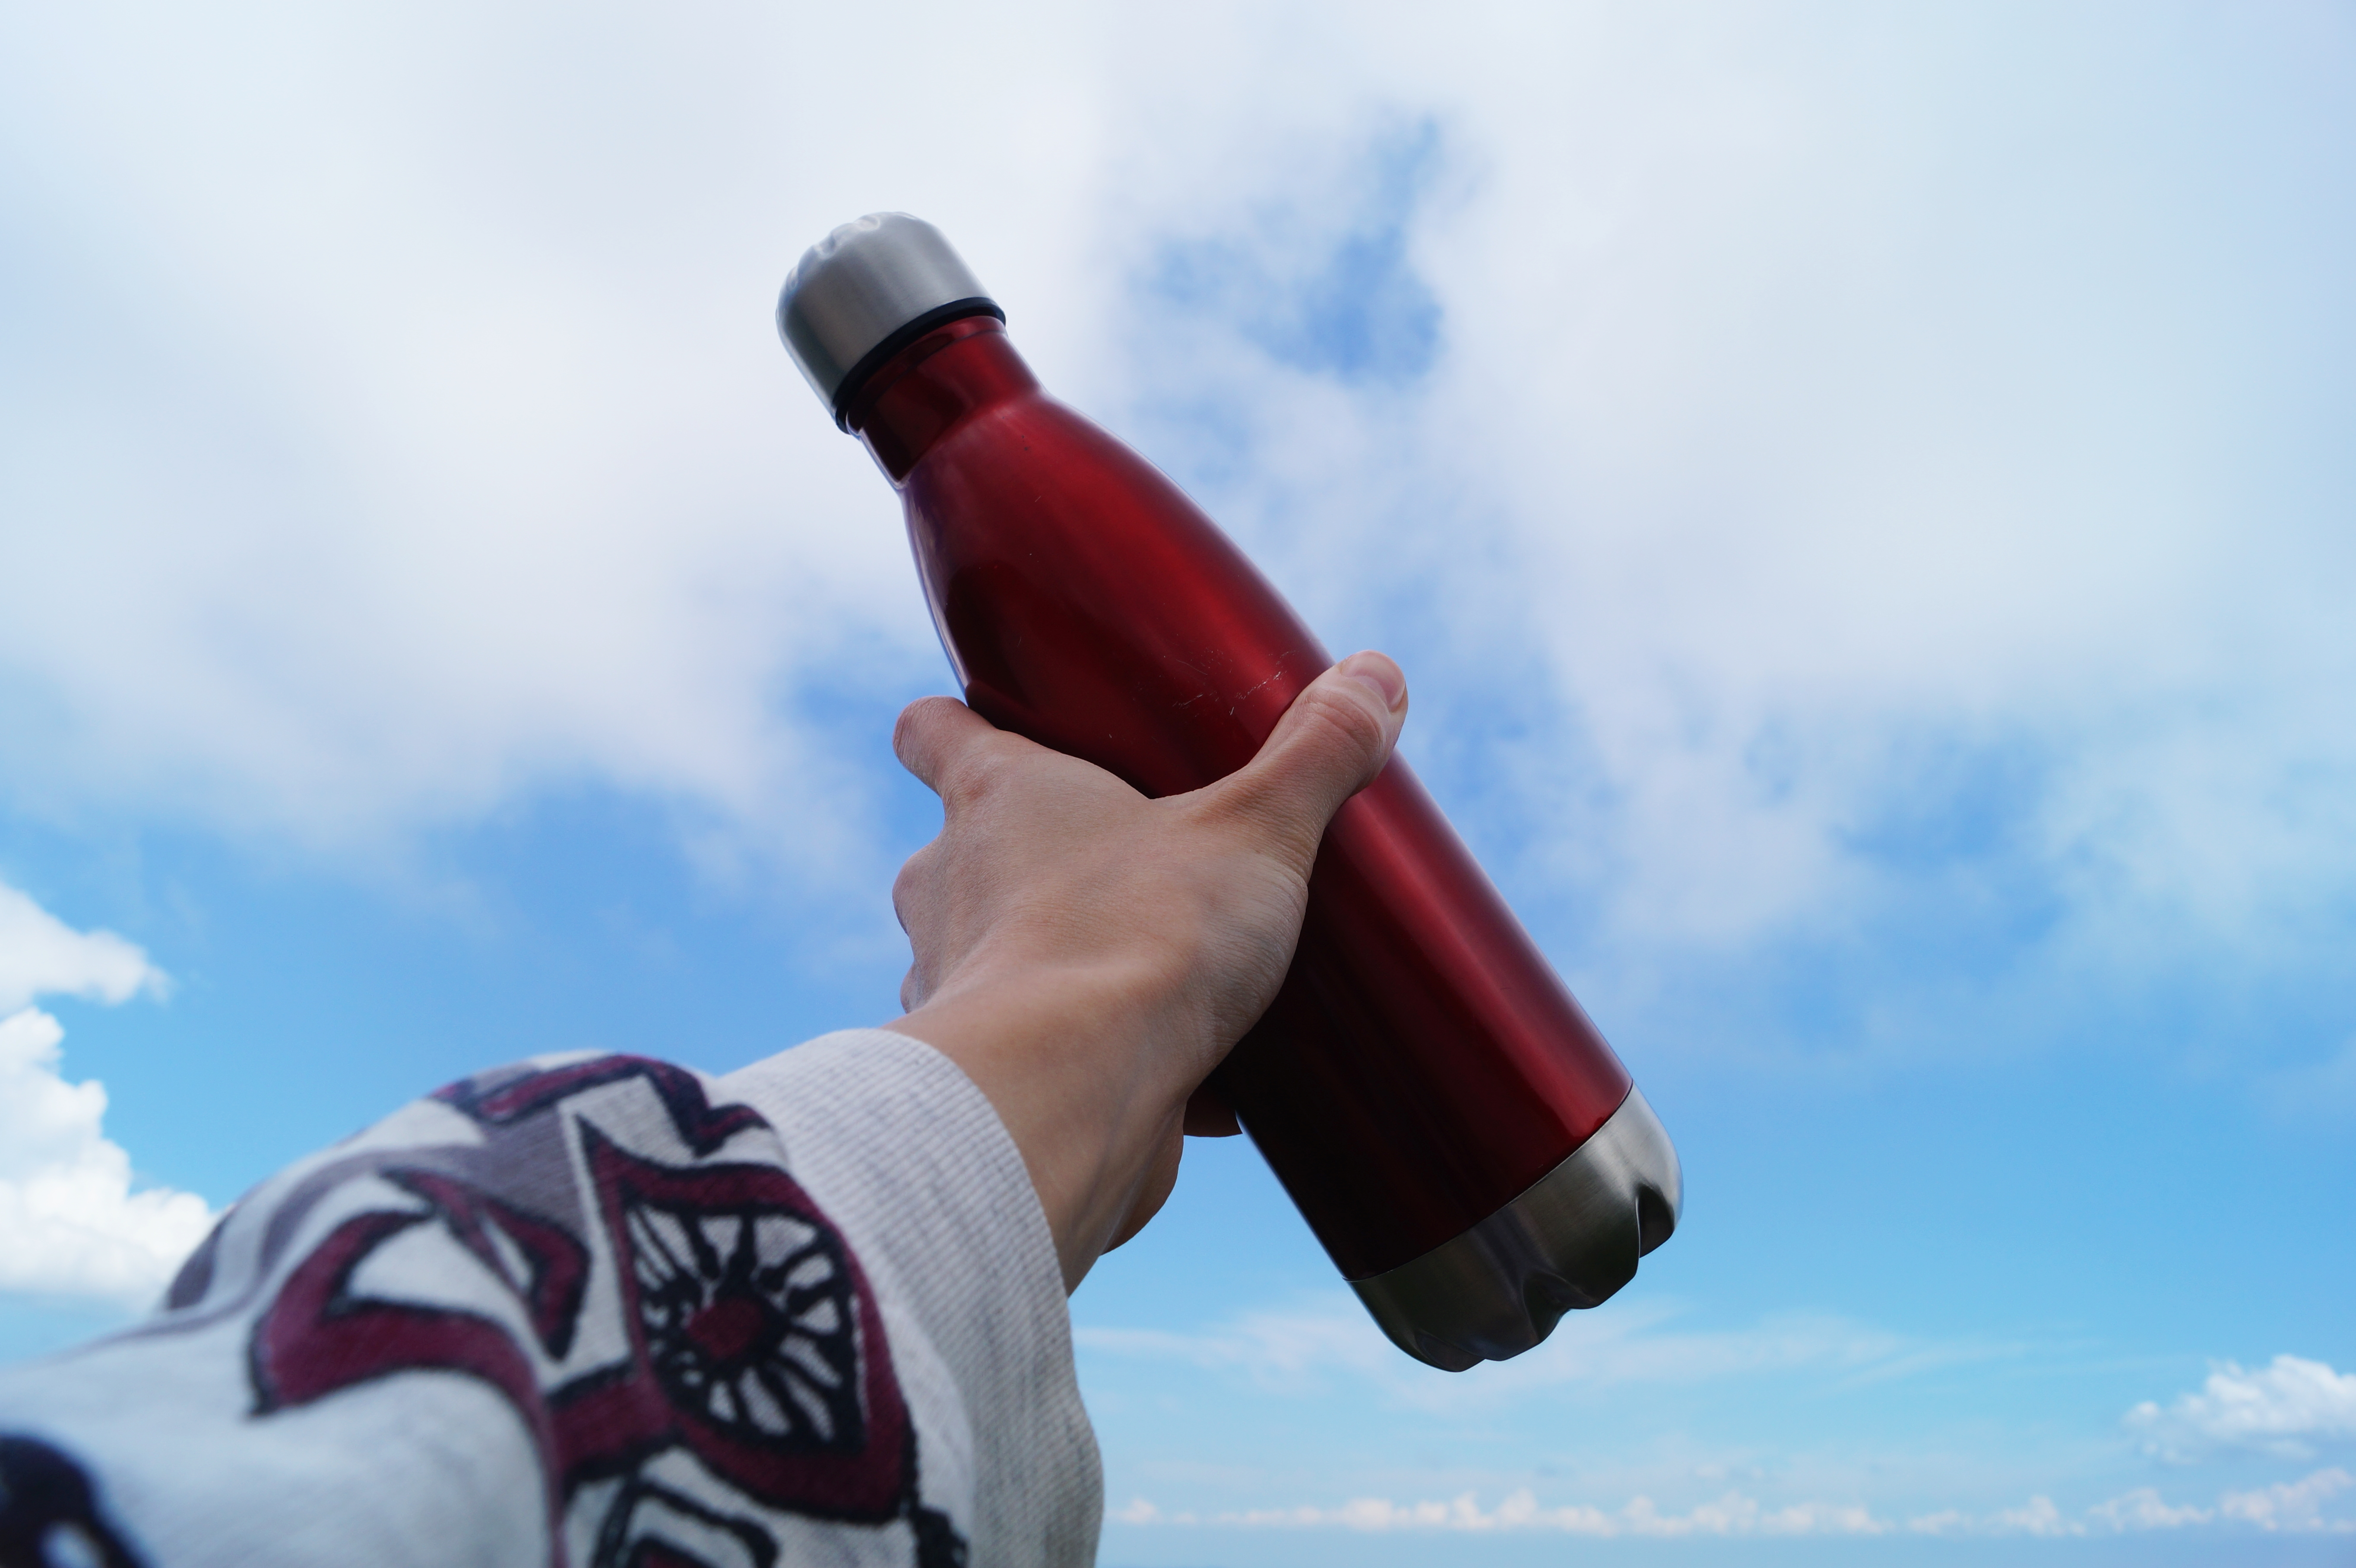 hand holding red stainless steel reusable water bottle